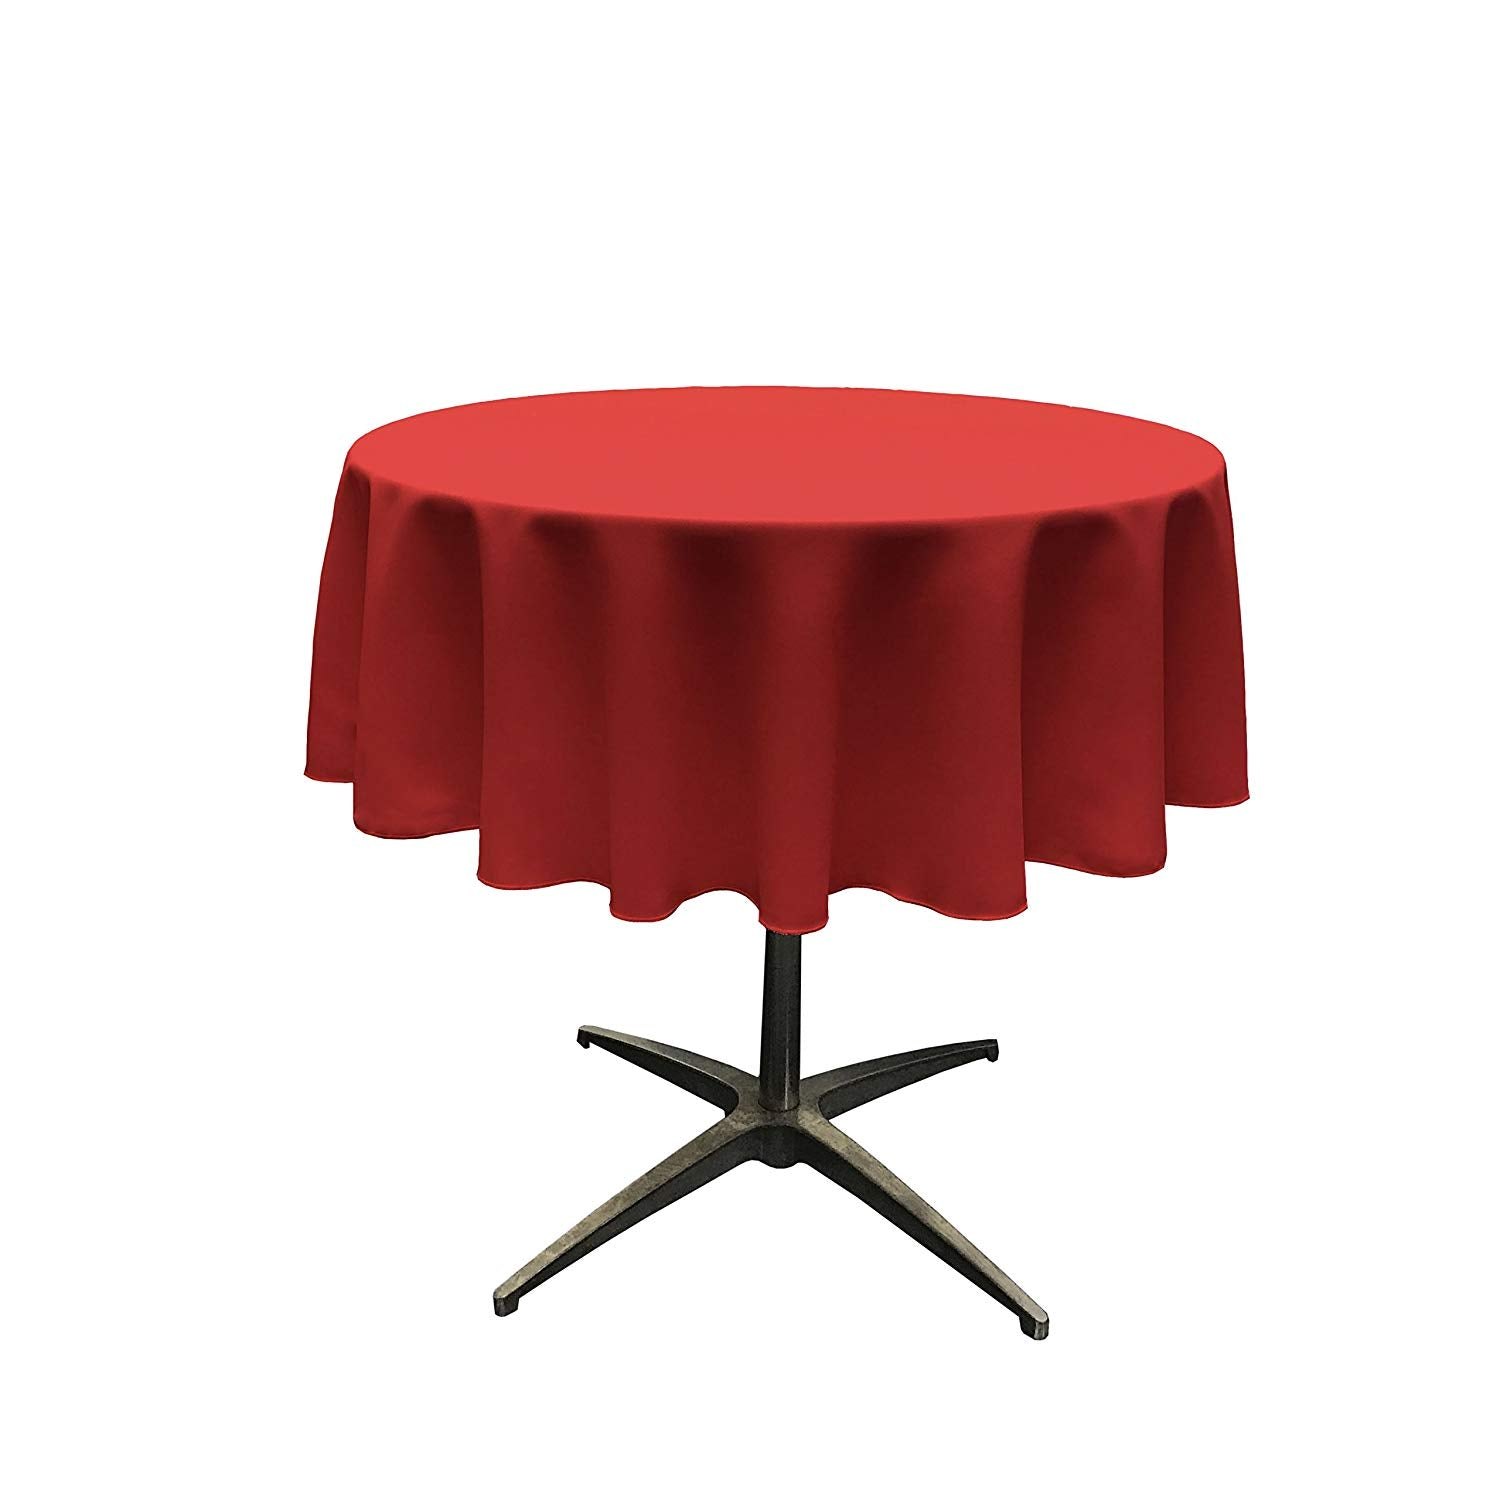 Polyester Poplin Tablecloth 51-Inch Round, Red - KINGDOM OF FABRICS